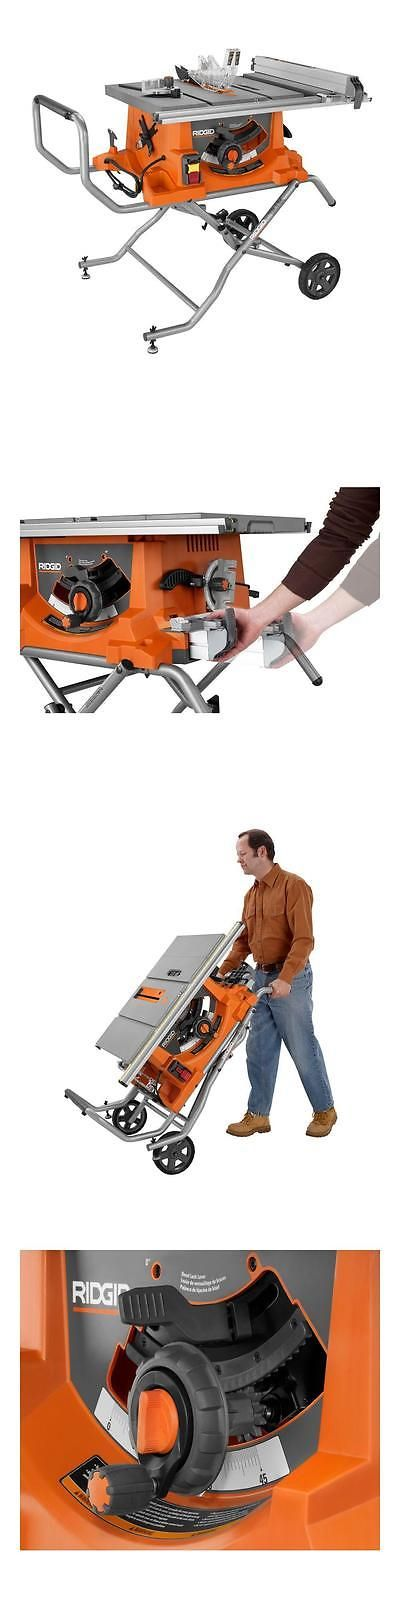 Table Saws 122835: Ridgid 15 Amp 10 In. Heavy-Duty Portable Table Saw With Stand R4513 New -> BUY IT NOW ONLY: $320 on eBay!